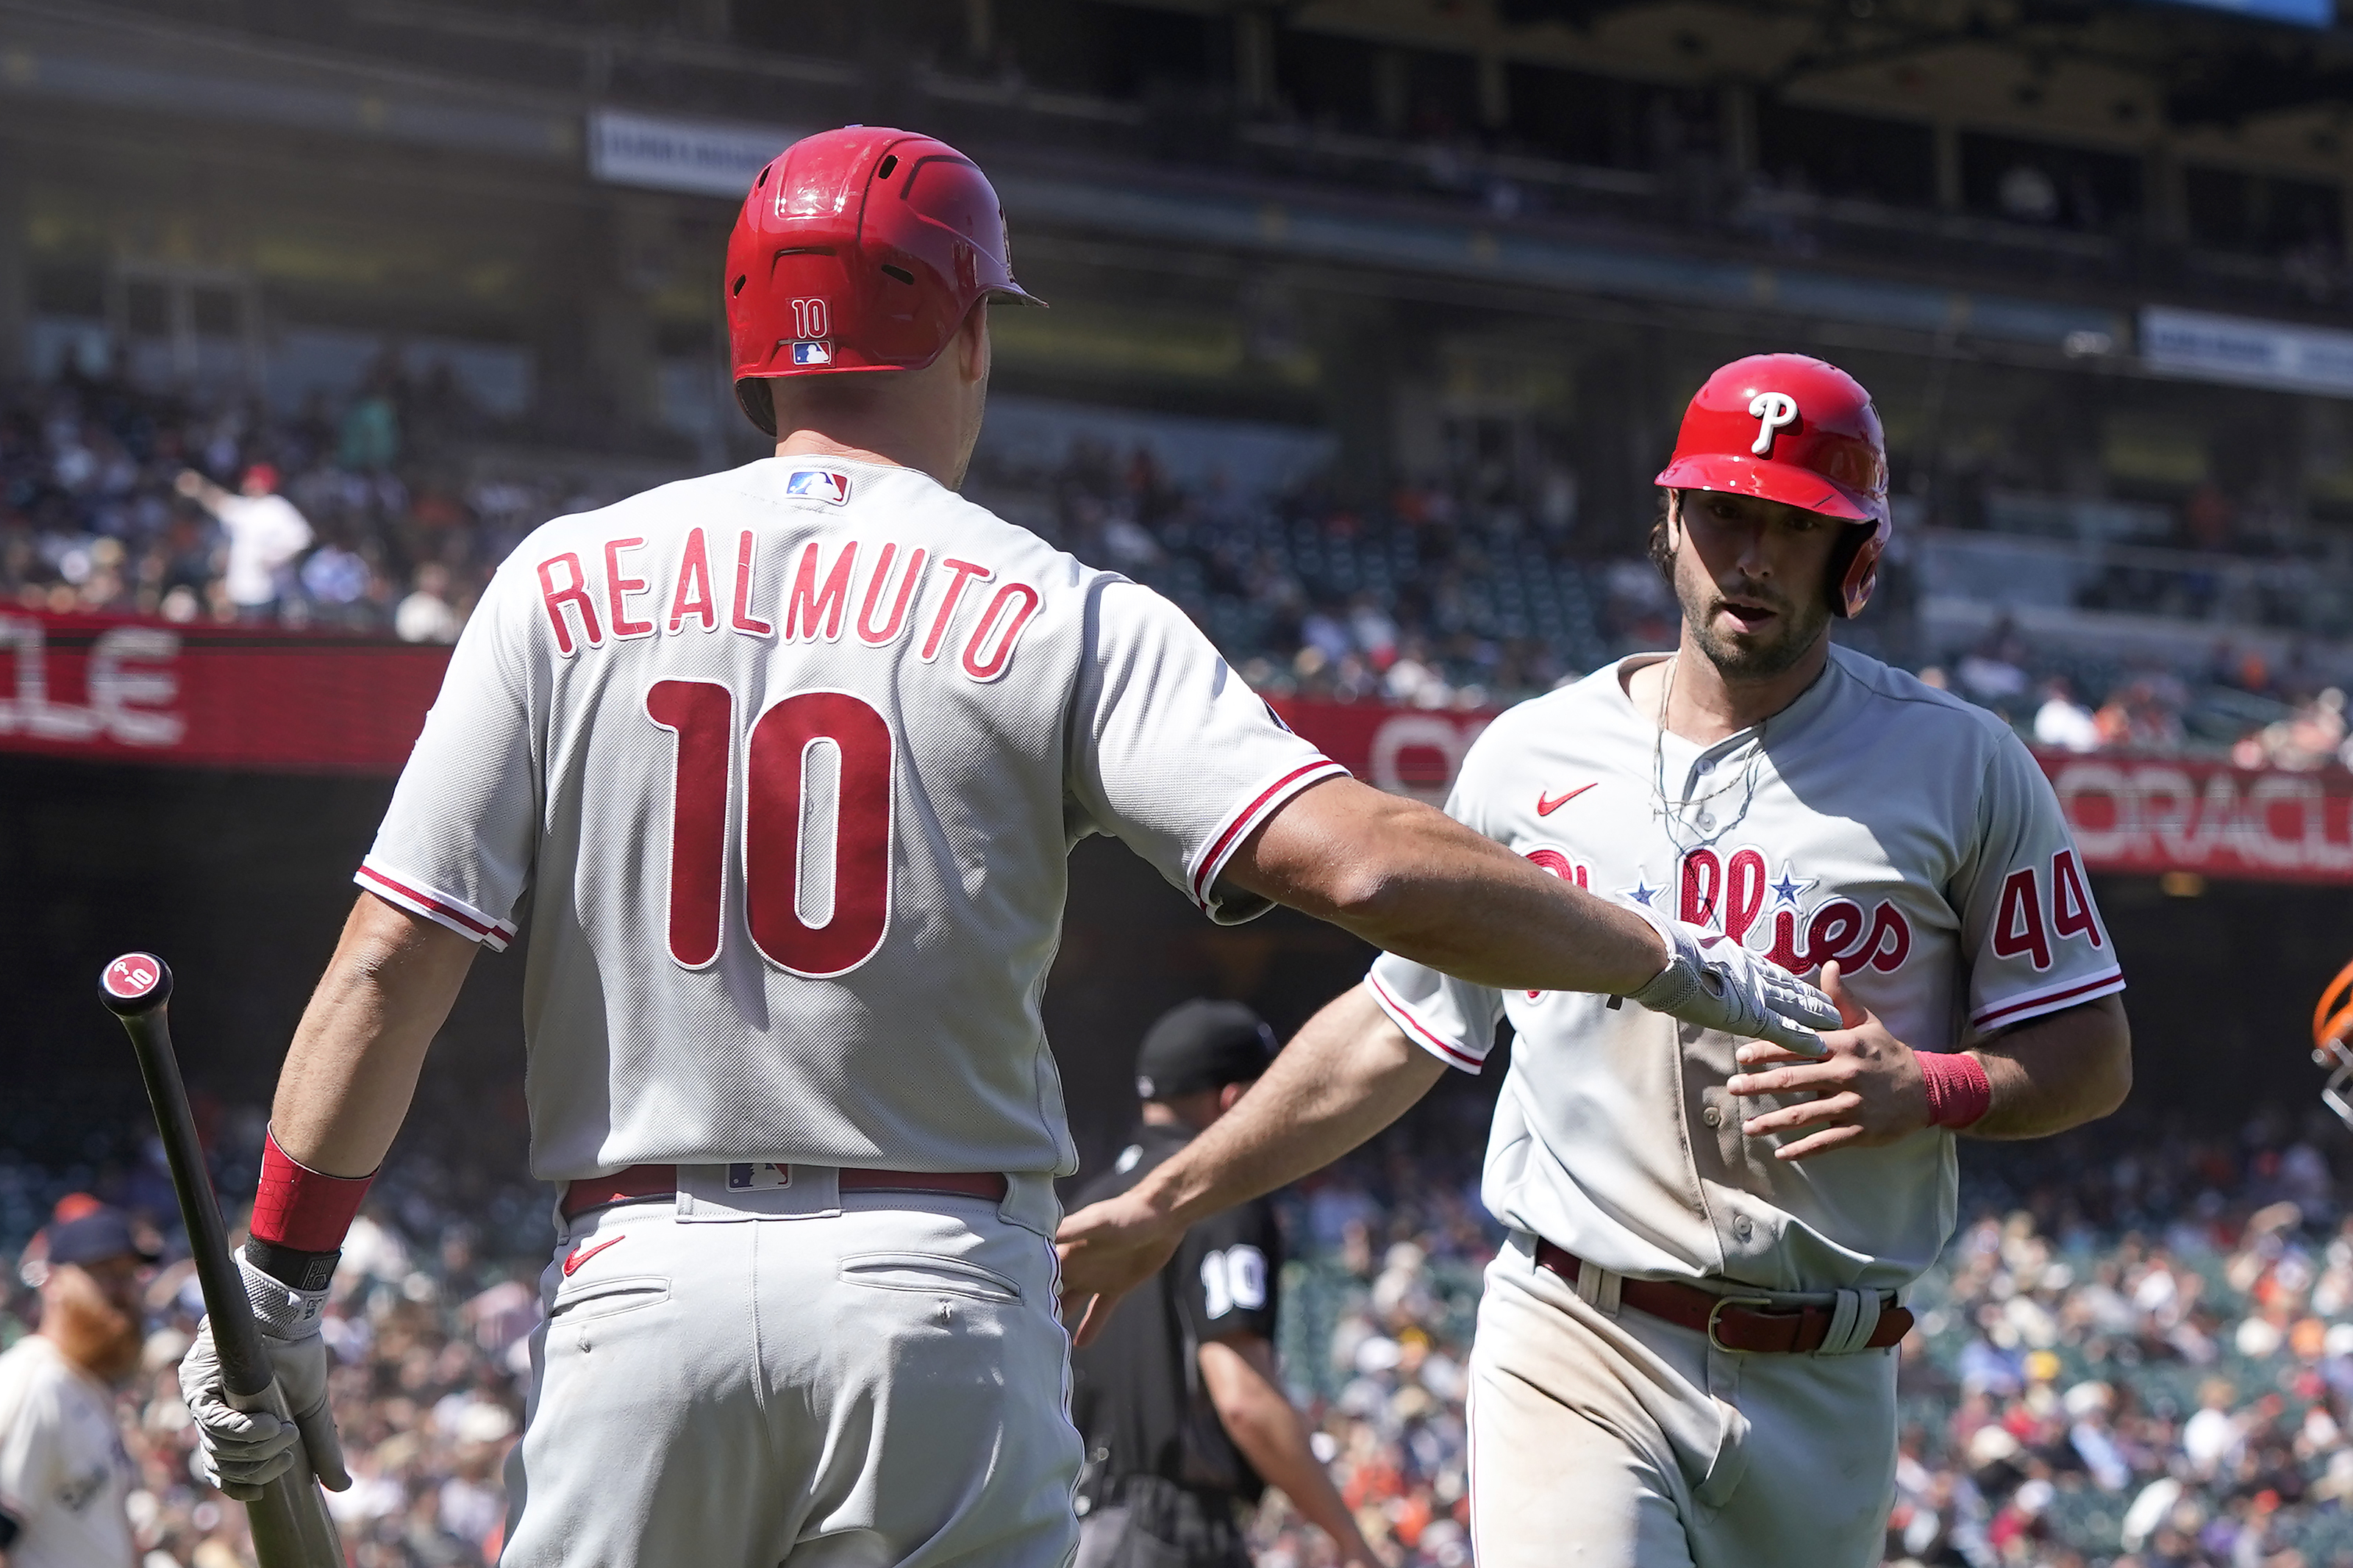 Giants' Alex Wood, bullpen roughed up in blowout loss to Phillies